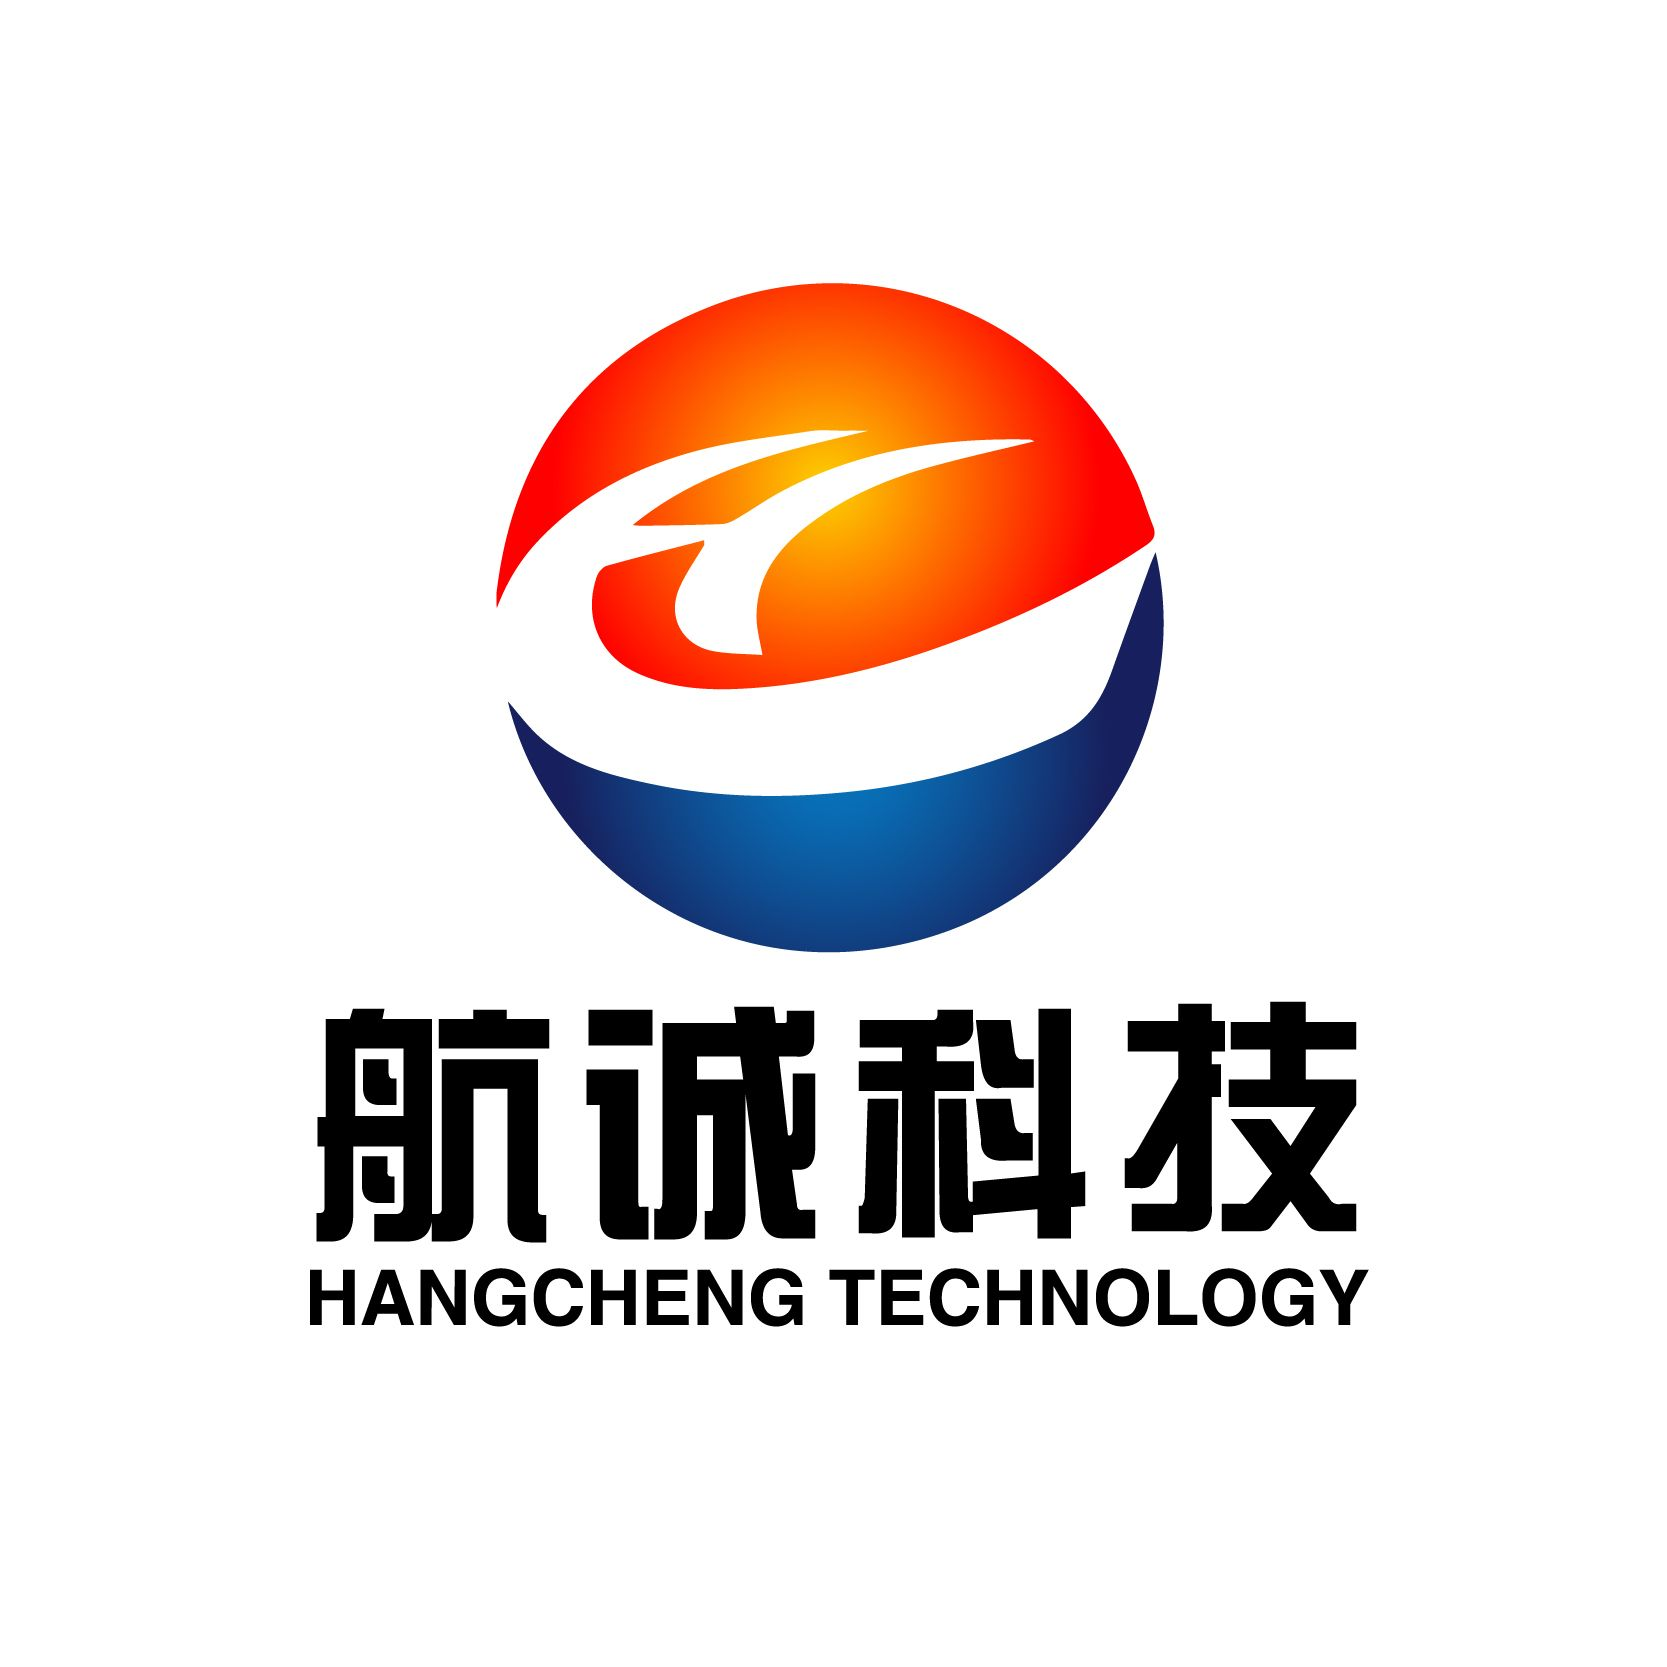 Guangdong Airlines Cheng Technology Co., Ltd.